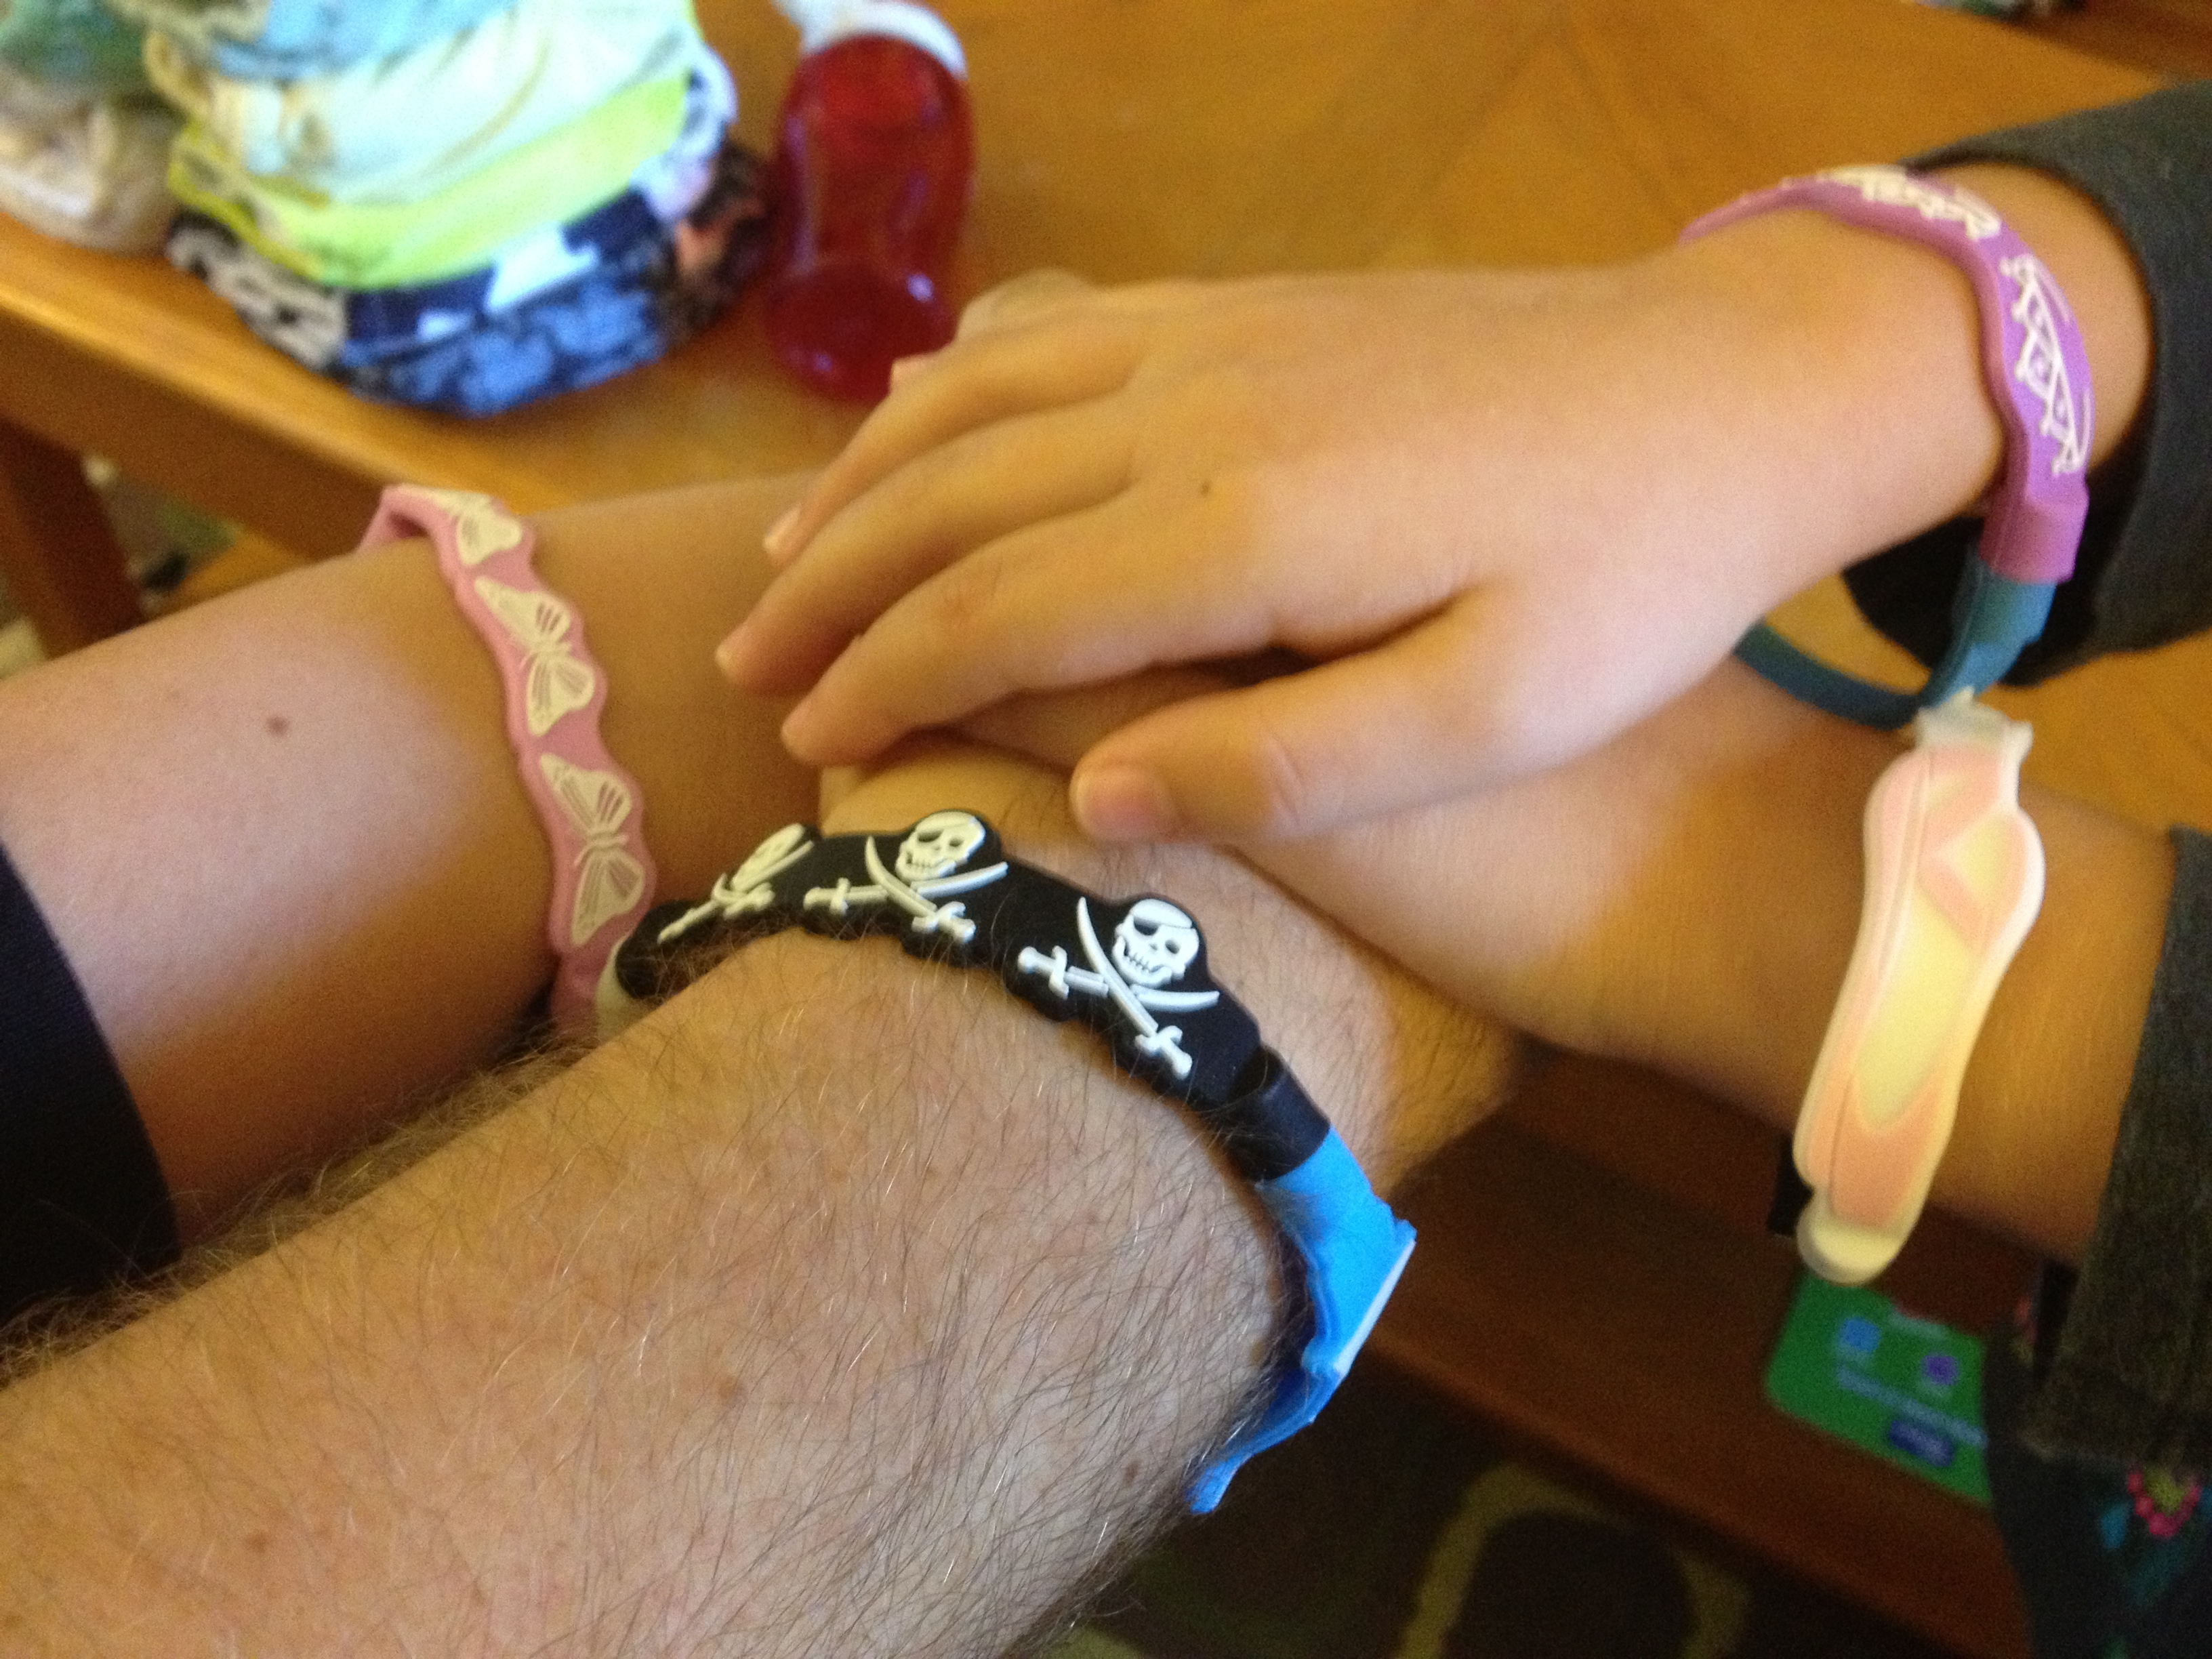 Toy Review: Mungi Magnetic Bands